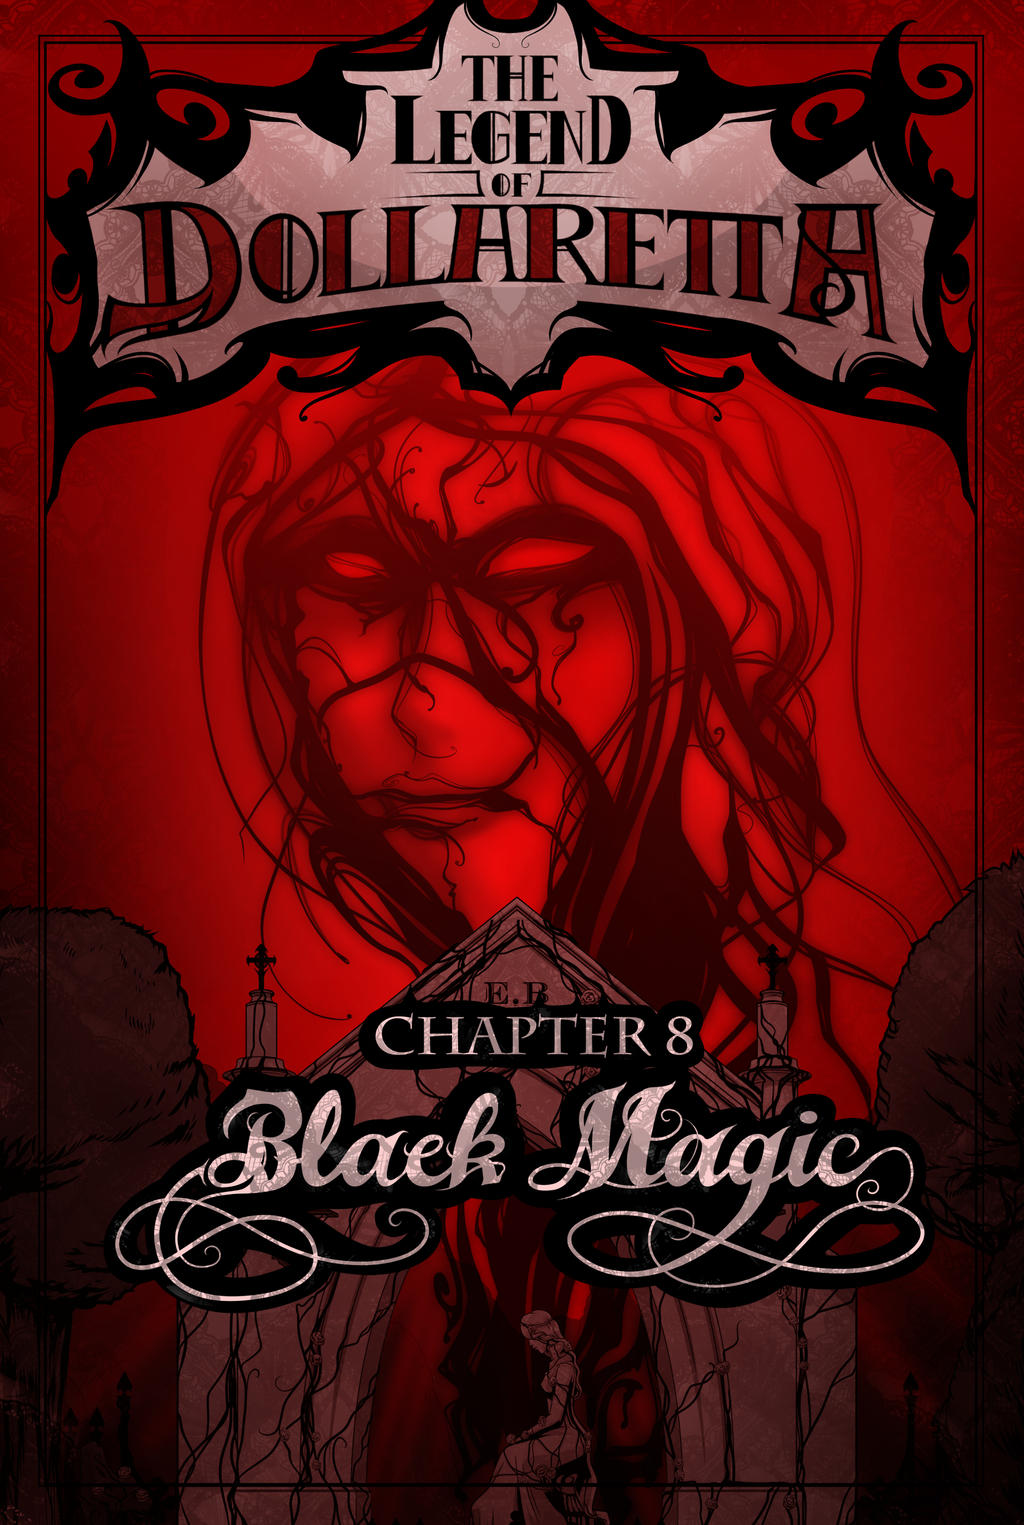 The Legend of Dollaretta - 8 Black Magic by erryCherry